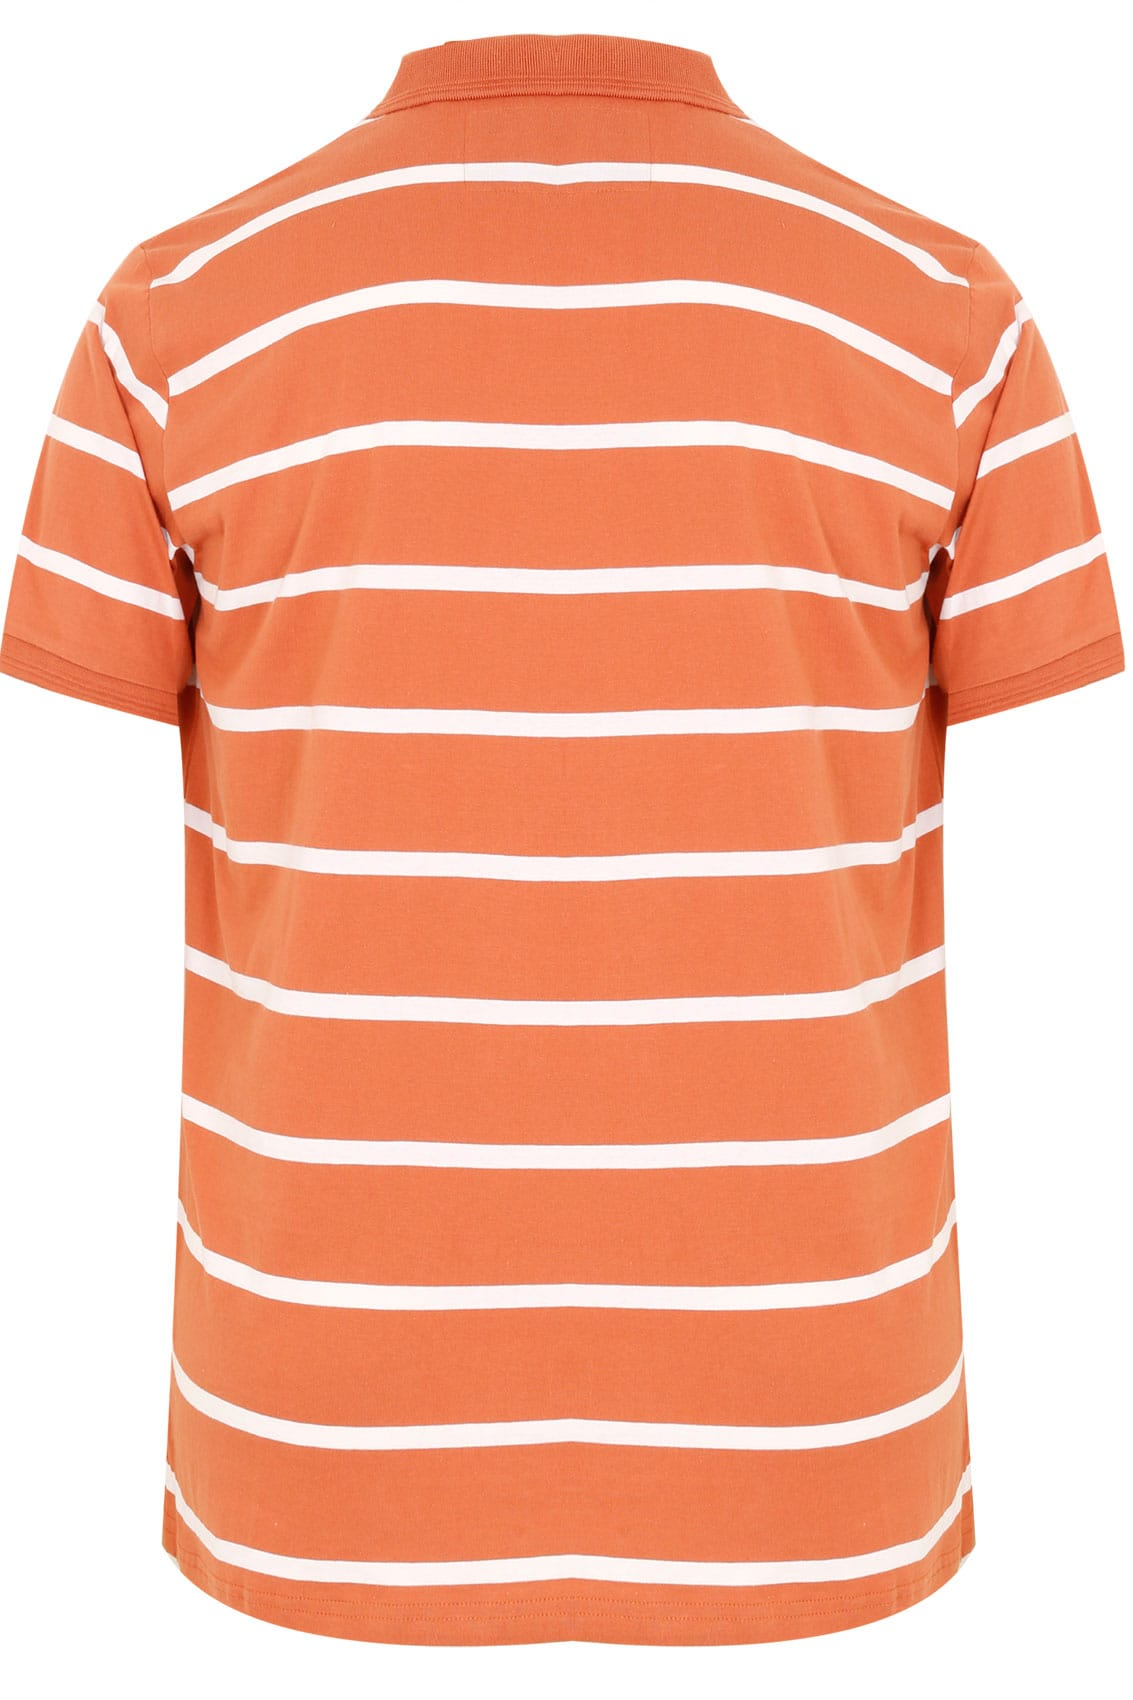 Badrhino Orange Wide Stripe Polo Shirt Tall Size L To 6xl